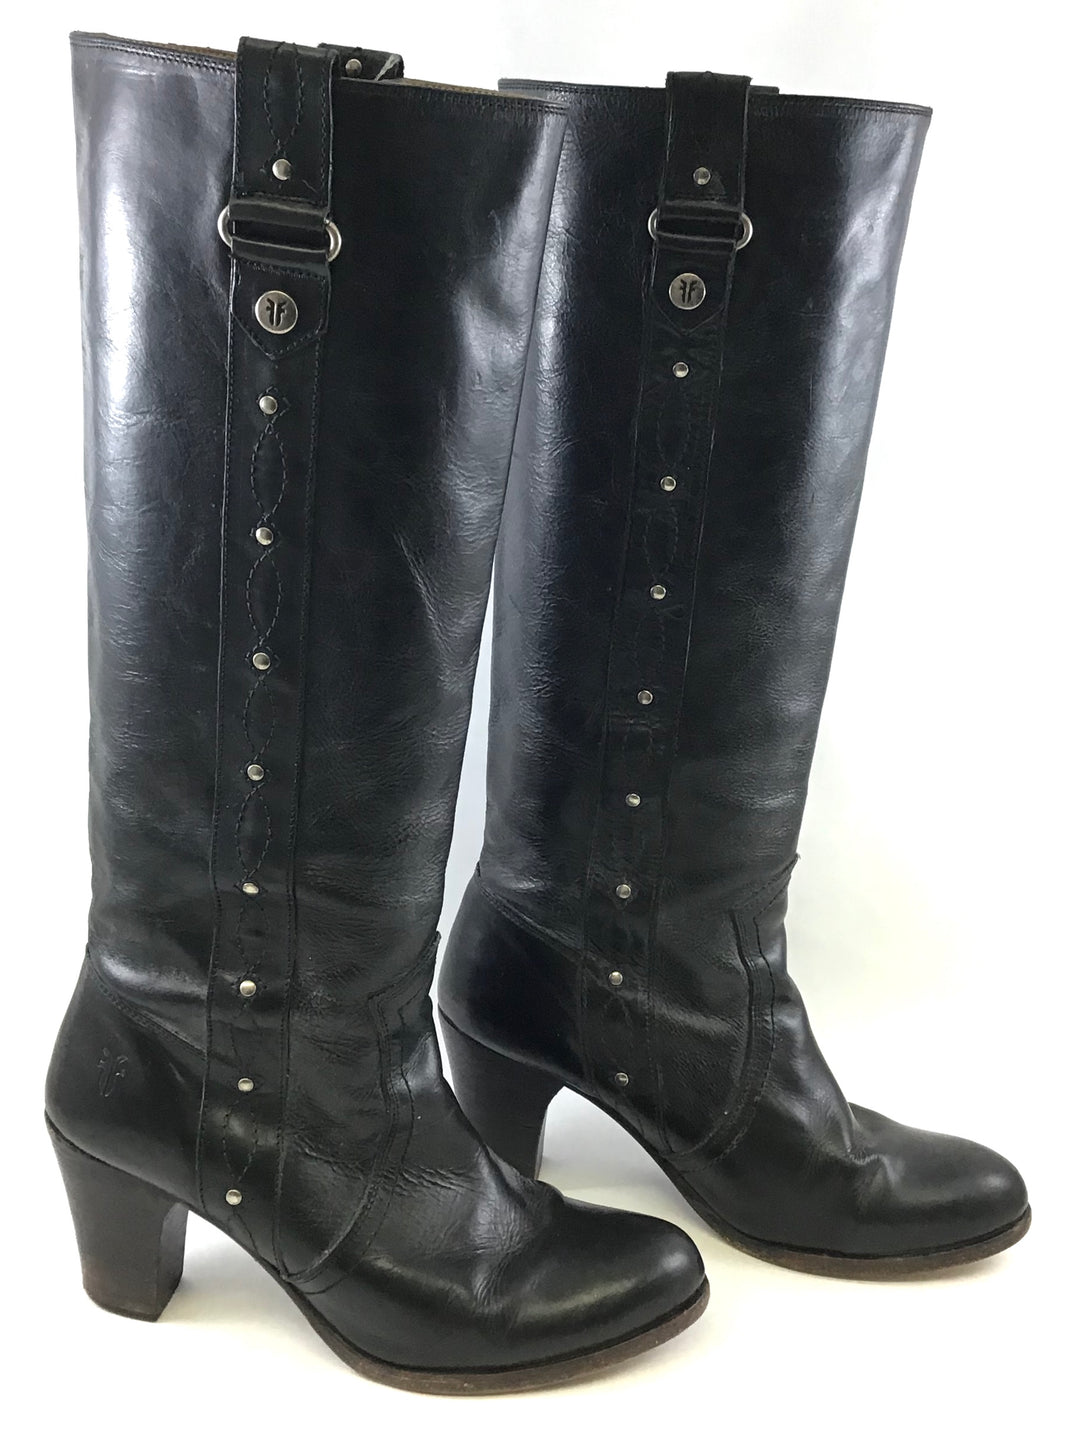 Primary Photo - BRAND: FRYE <BR>STYLE: BOOTS DESIGNER <BR>COLOR: BLACK <BR>SIZE: 8 <BR>SKU: 213-213143-1436